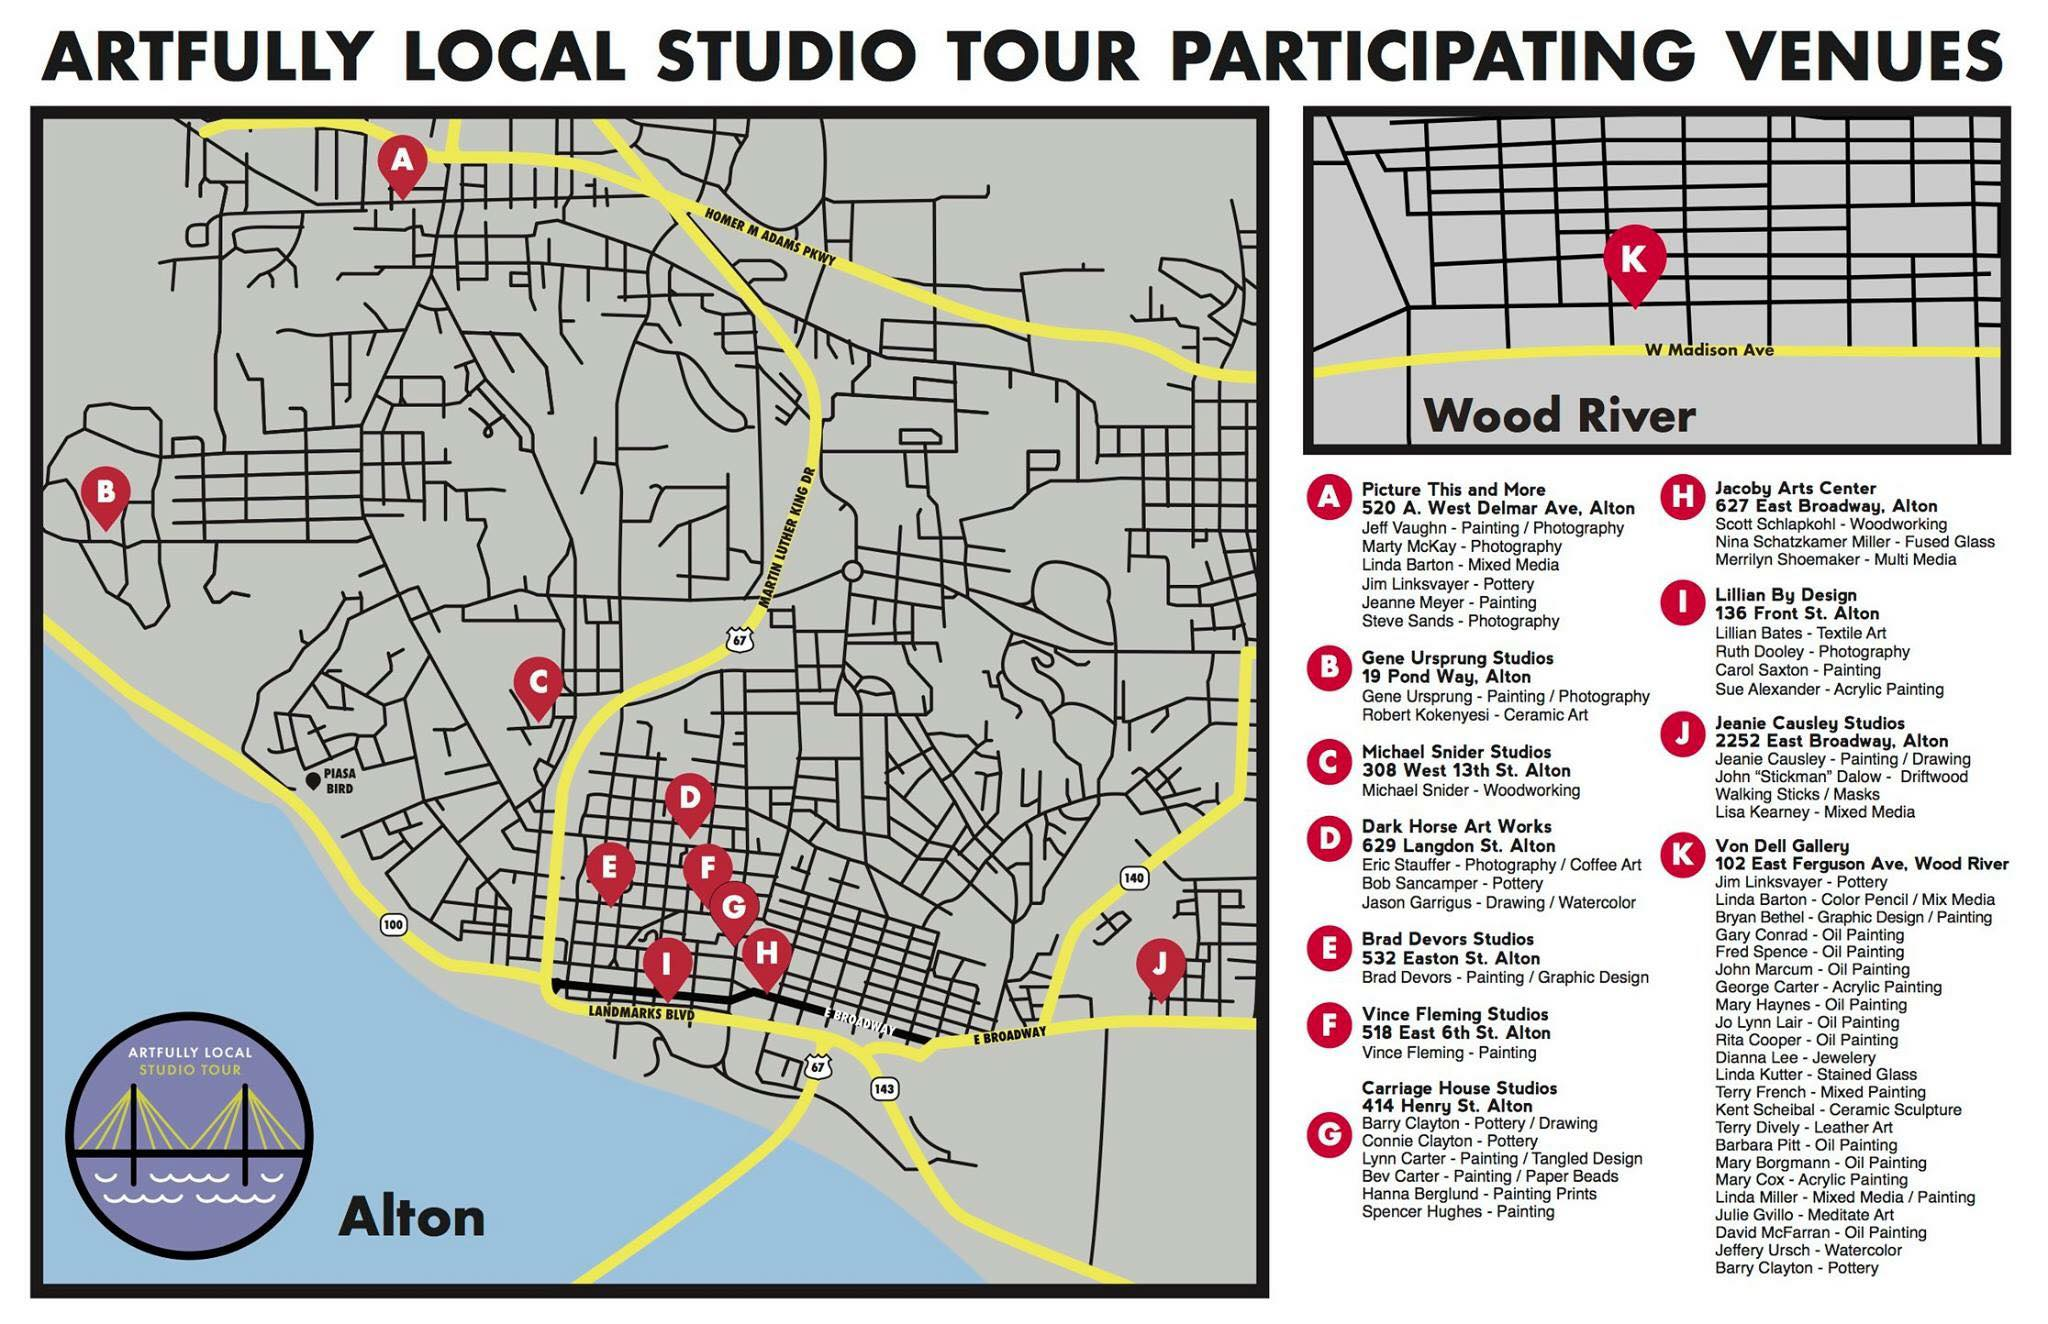 Map of participating studios and artists.